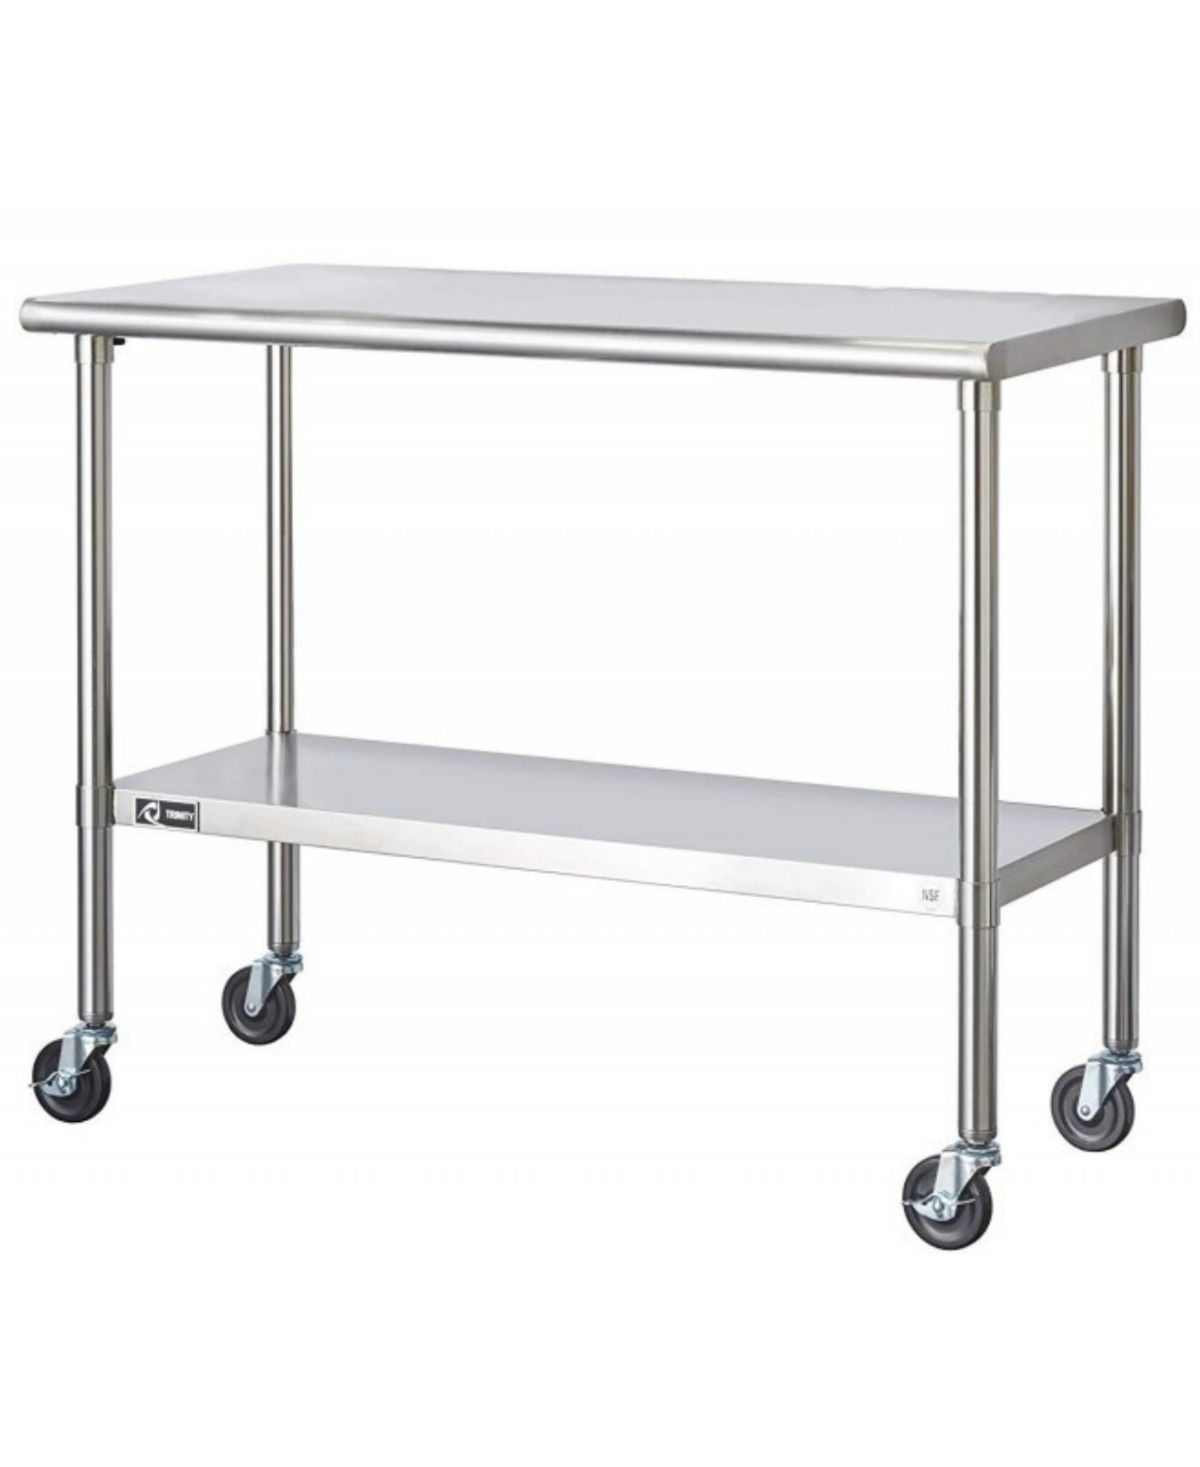 Trinity Ecostorage Stainless Steel Table Reviews Furniture